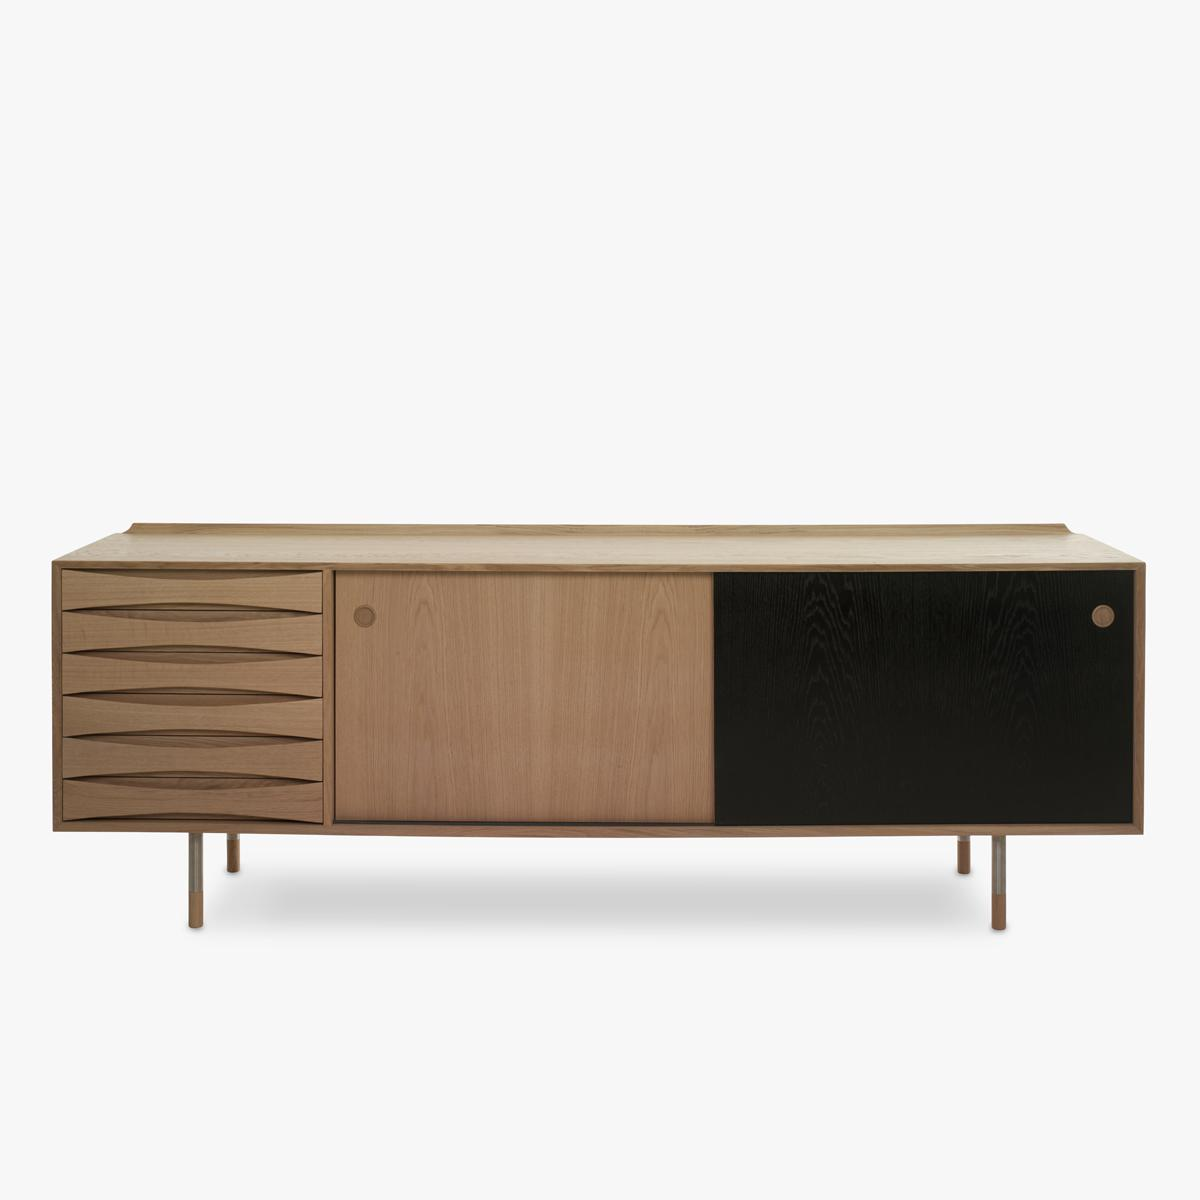 Vodder-26-Sideboard-Oak-Black-Door-Closed-1200